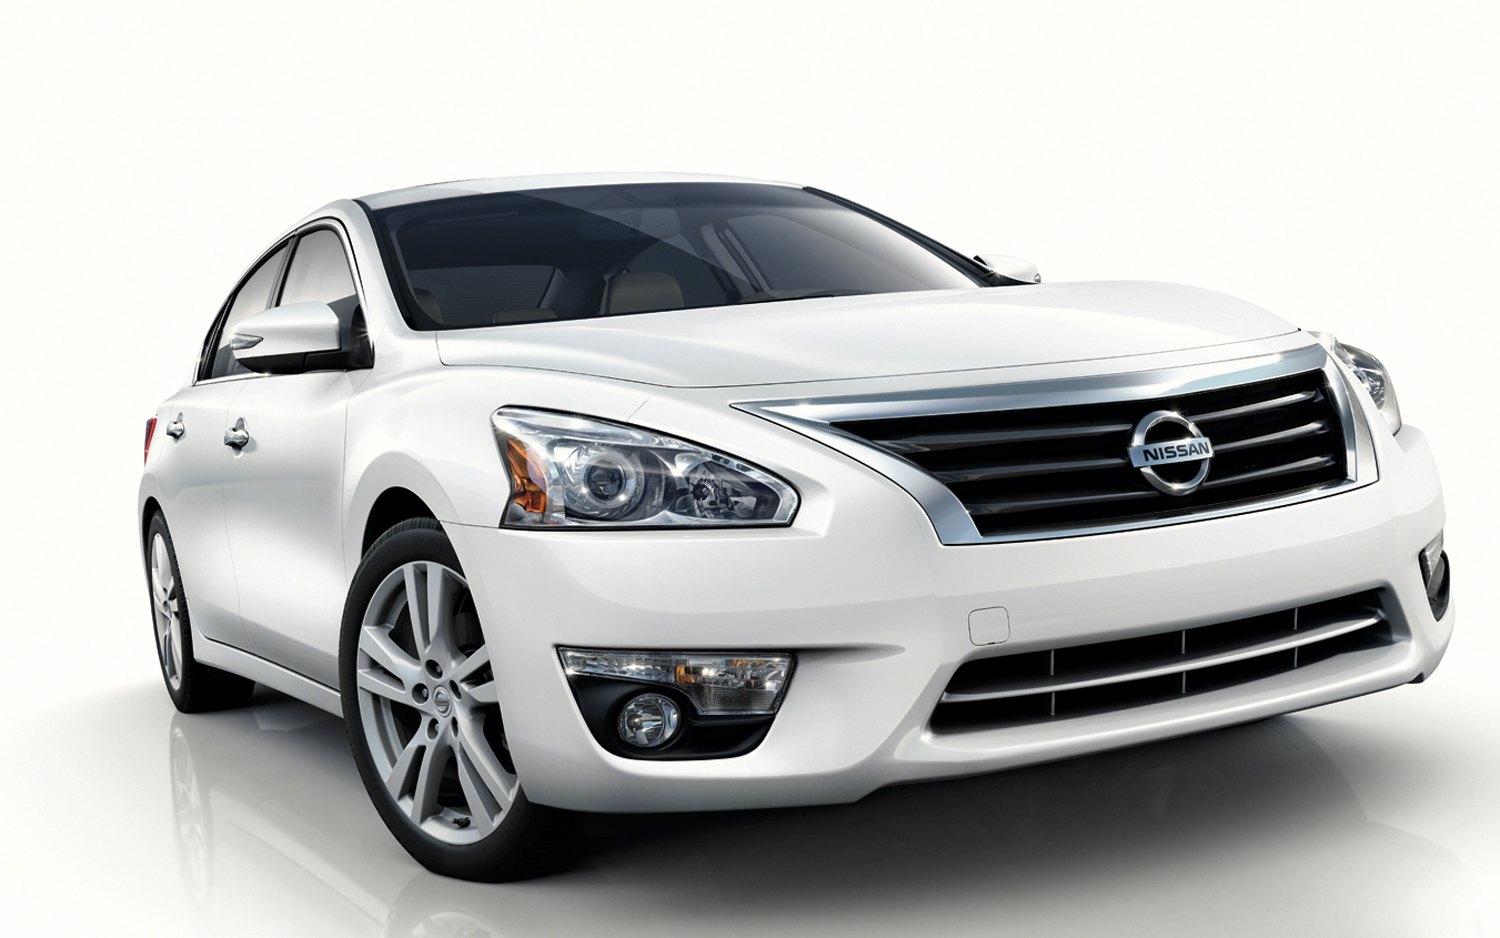 hyundai sonata used as reference point for 2013 nissan altima rh motortrend com Training Quick Reference Guides Quick Reference Guide Template